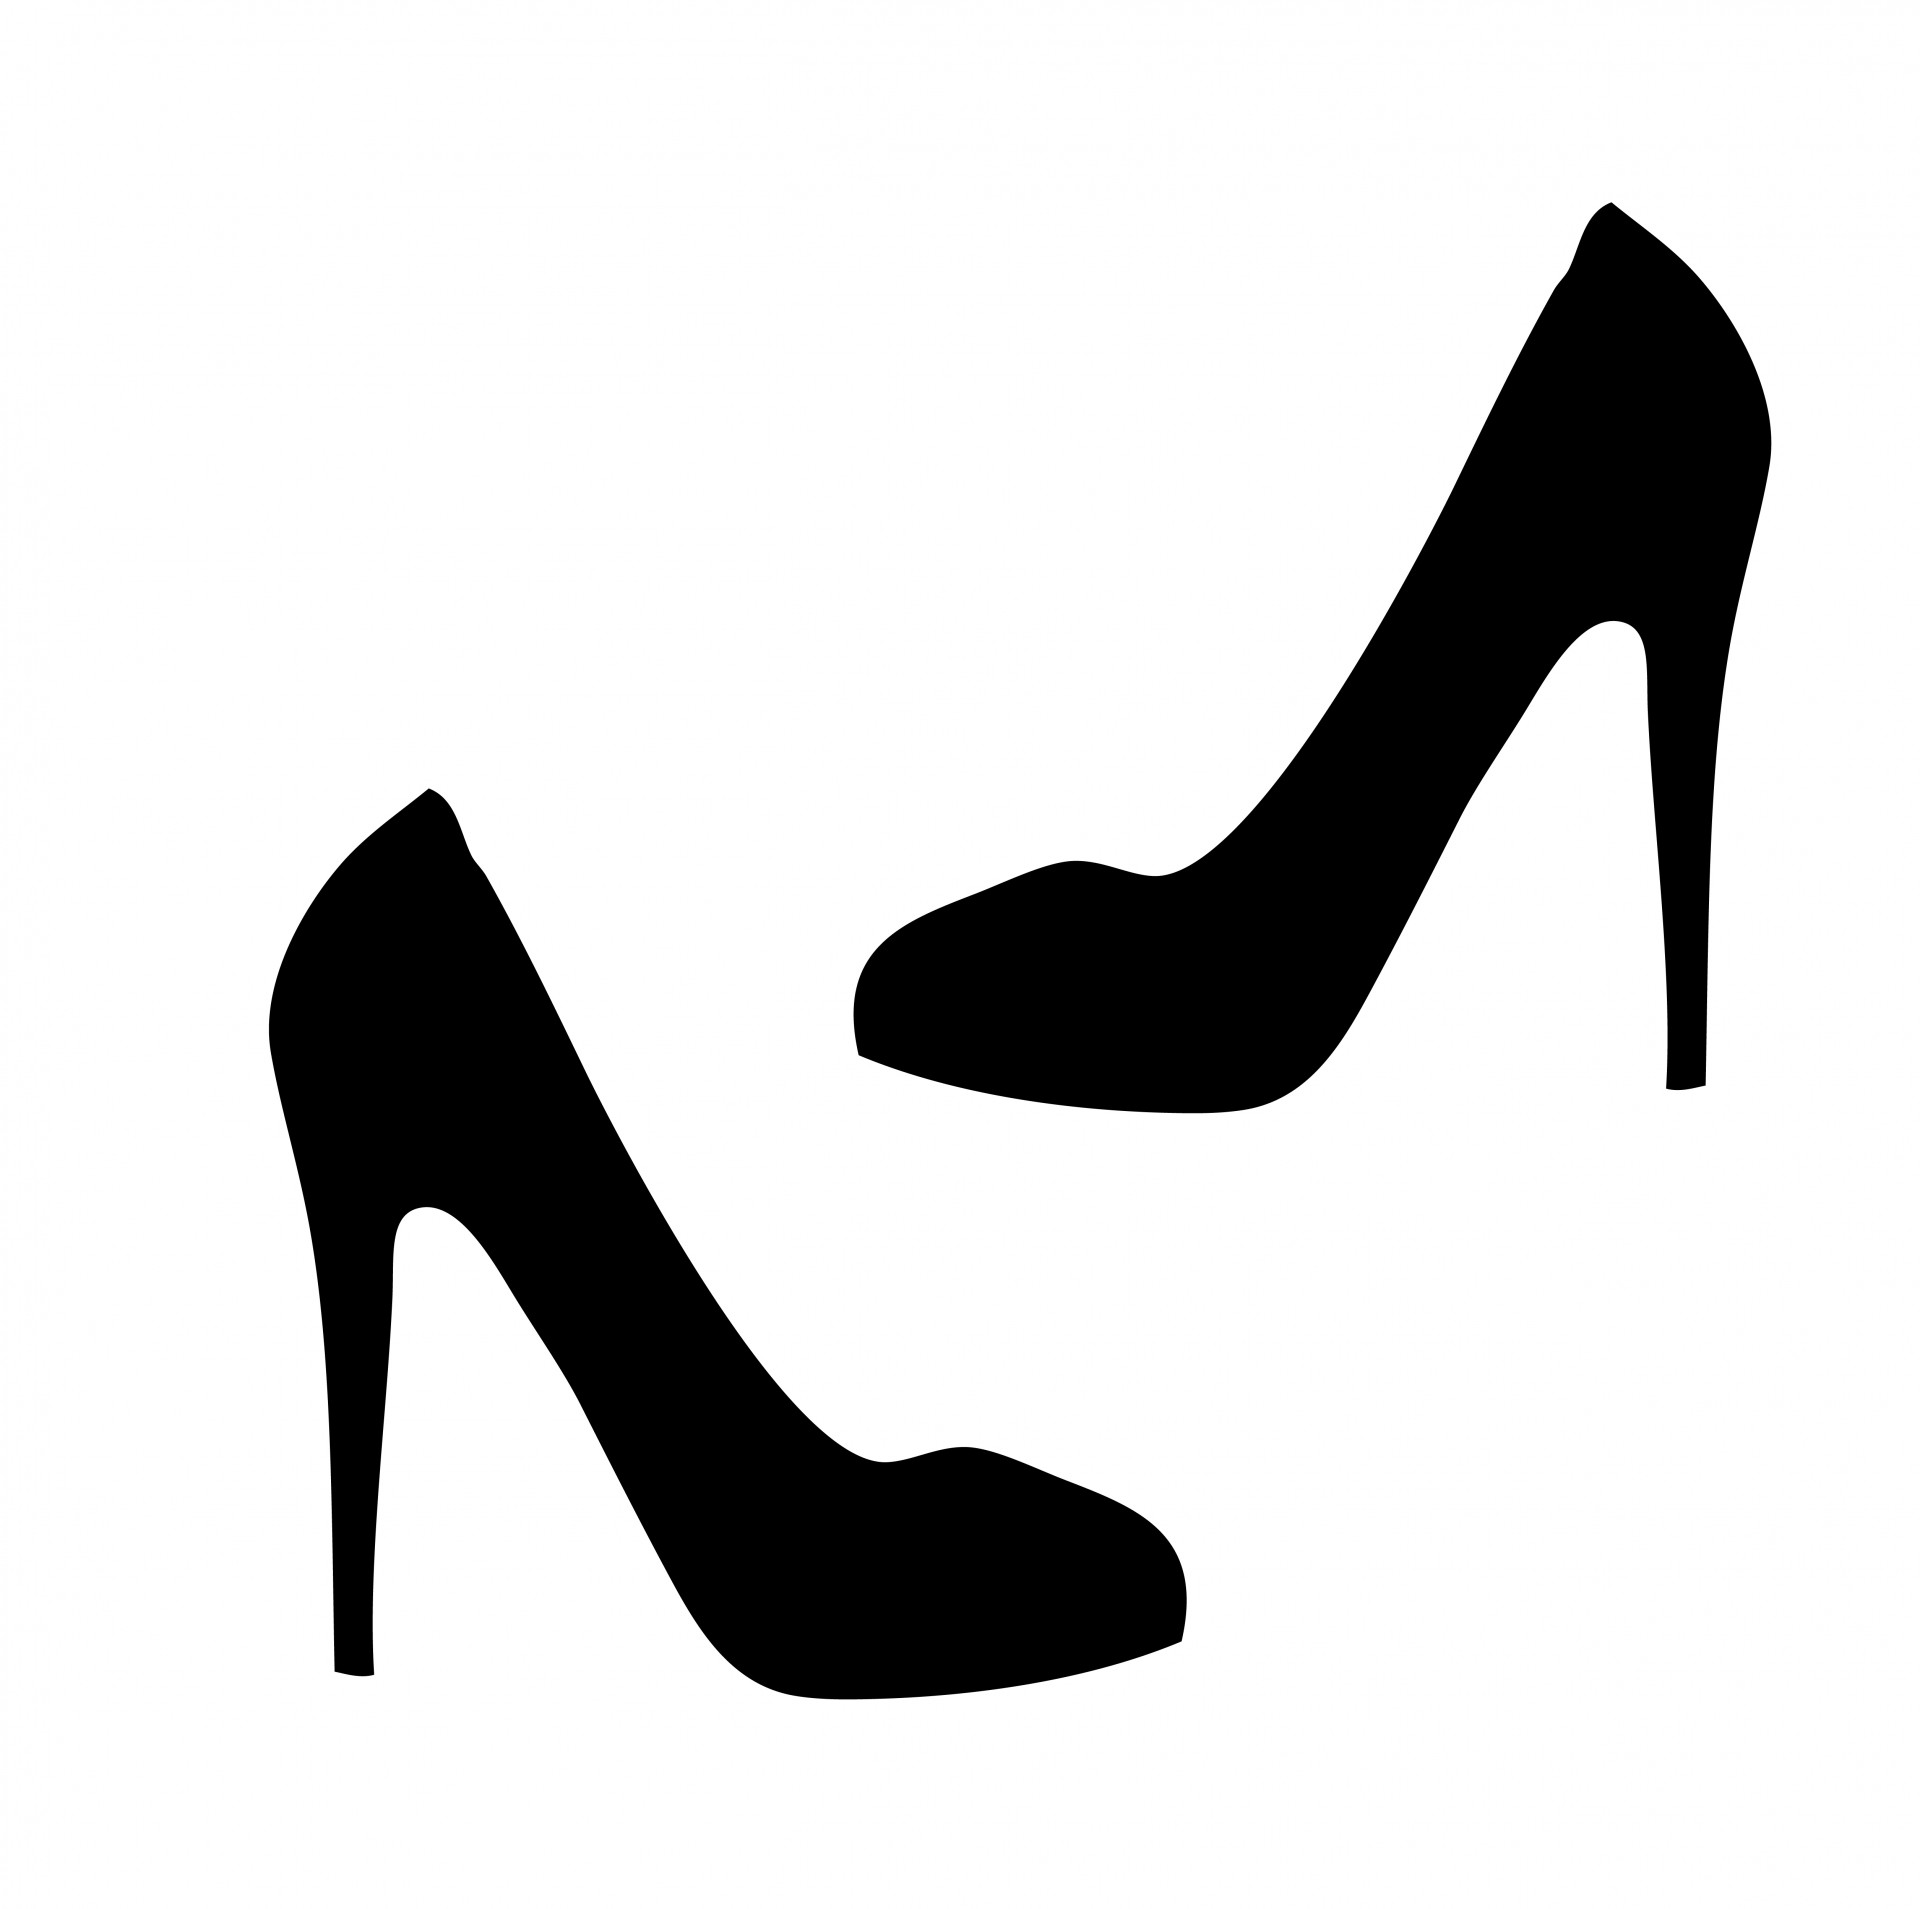 Heels clipart stilleto. Stiletto silhouette at getdrawings